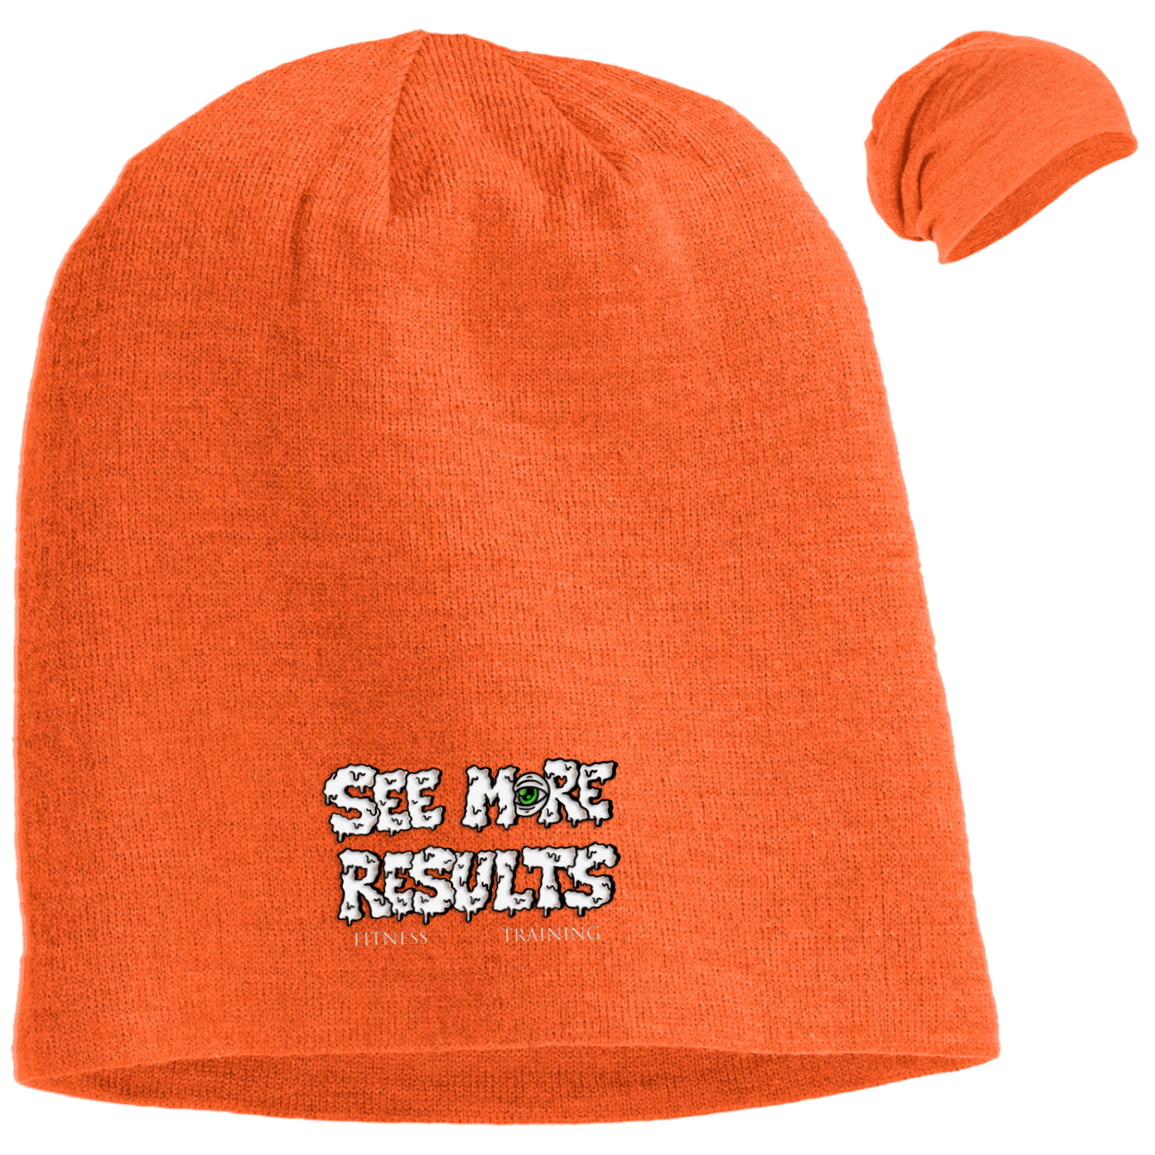 44ae9559eaa DT618 District Slouch Beanie – See More Results Apparel